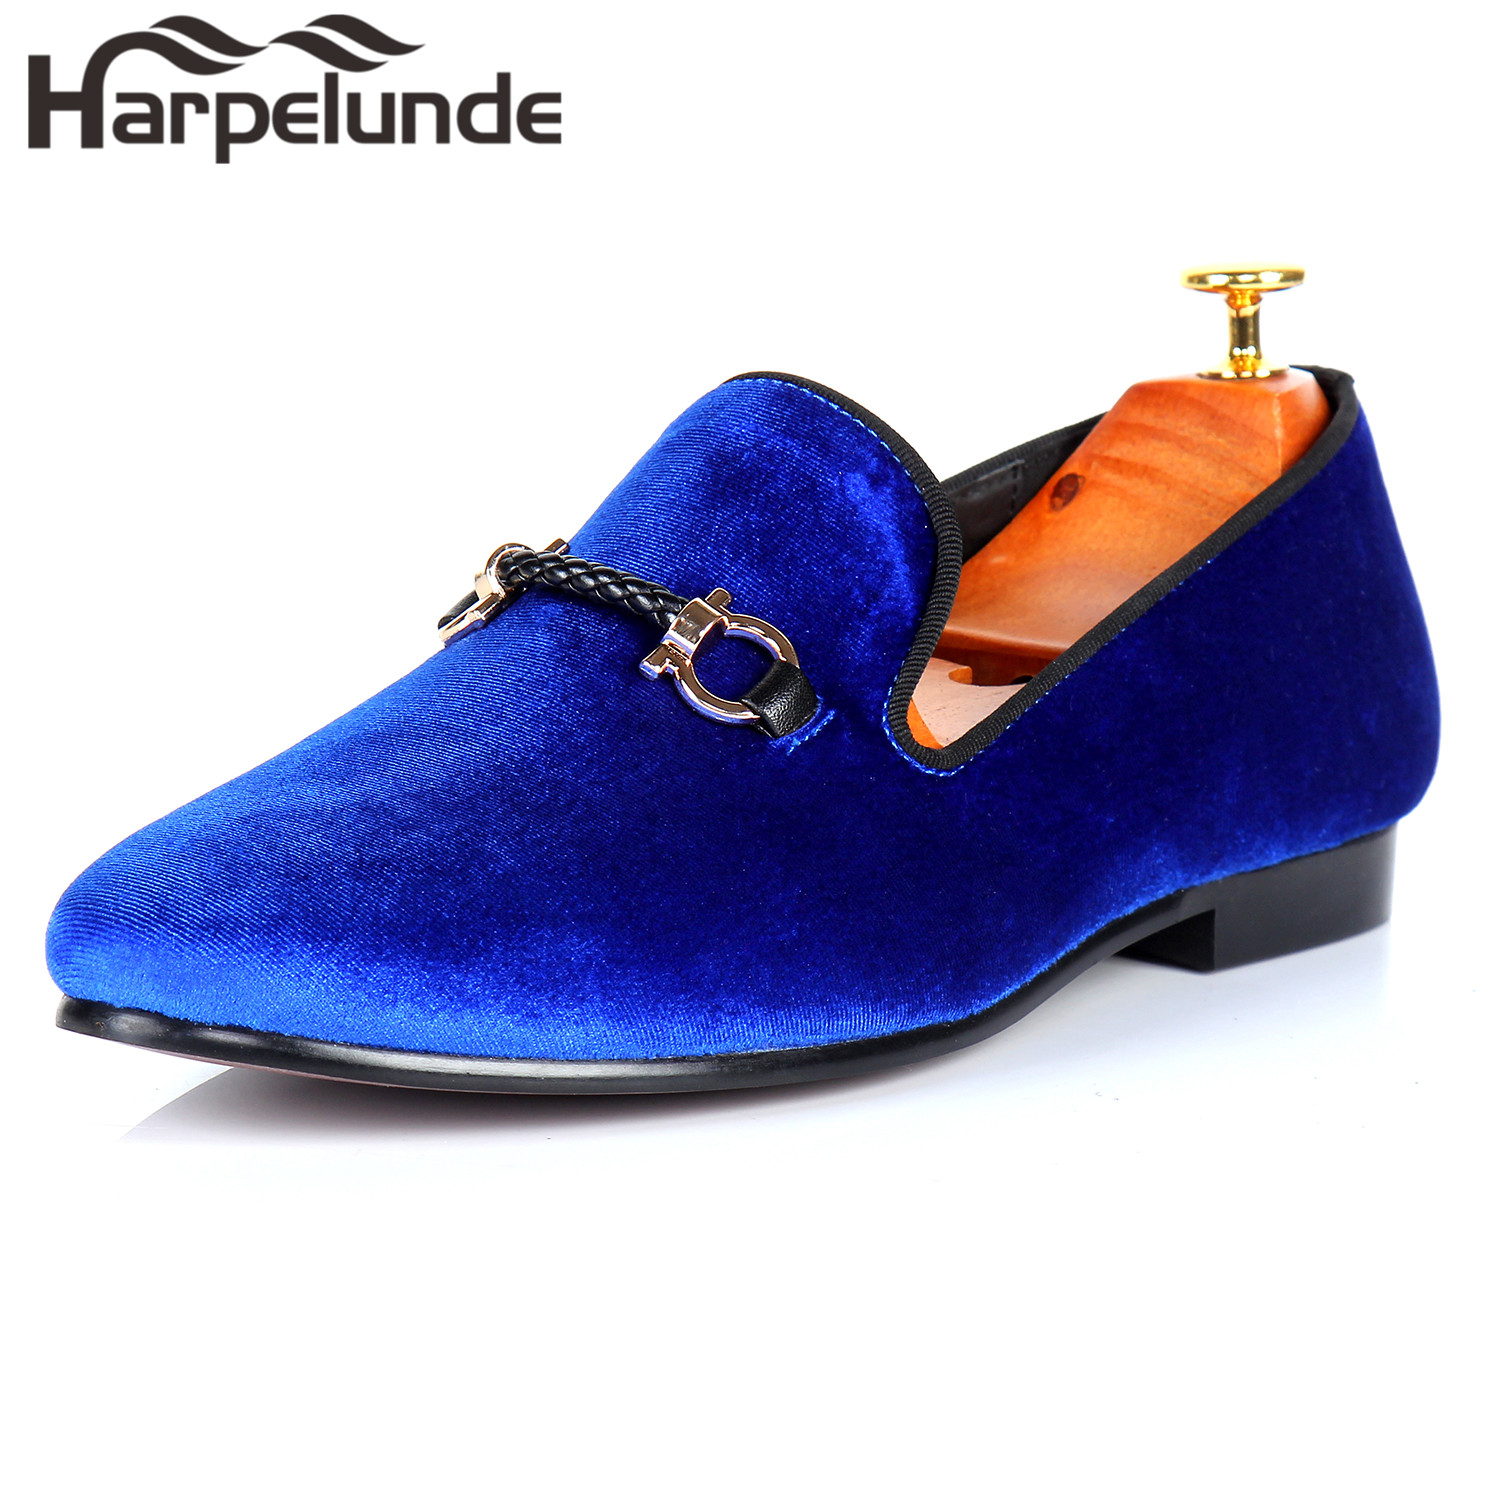 Harpelunde Men Buckle Strap Dress Shoes Blue Velvet Flat Loafers Size 6-14 harpelunde animal buckle men dress loafers printed velvet flat shoes with copper cap toe size 6 to 14